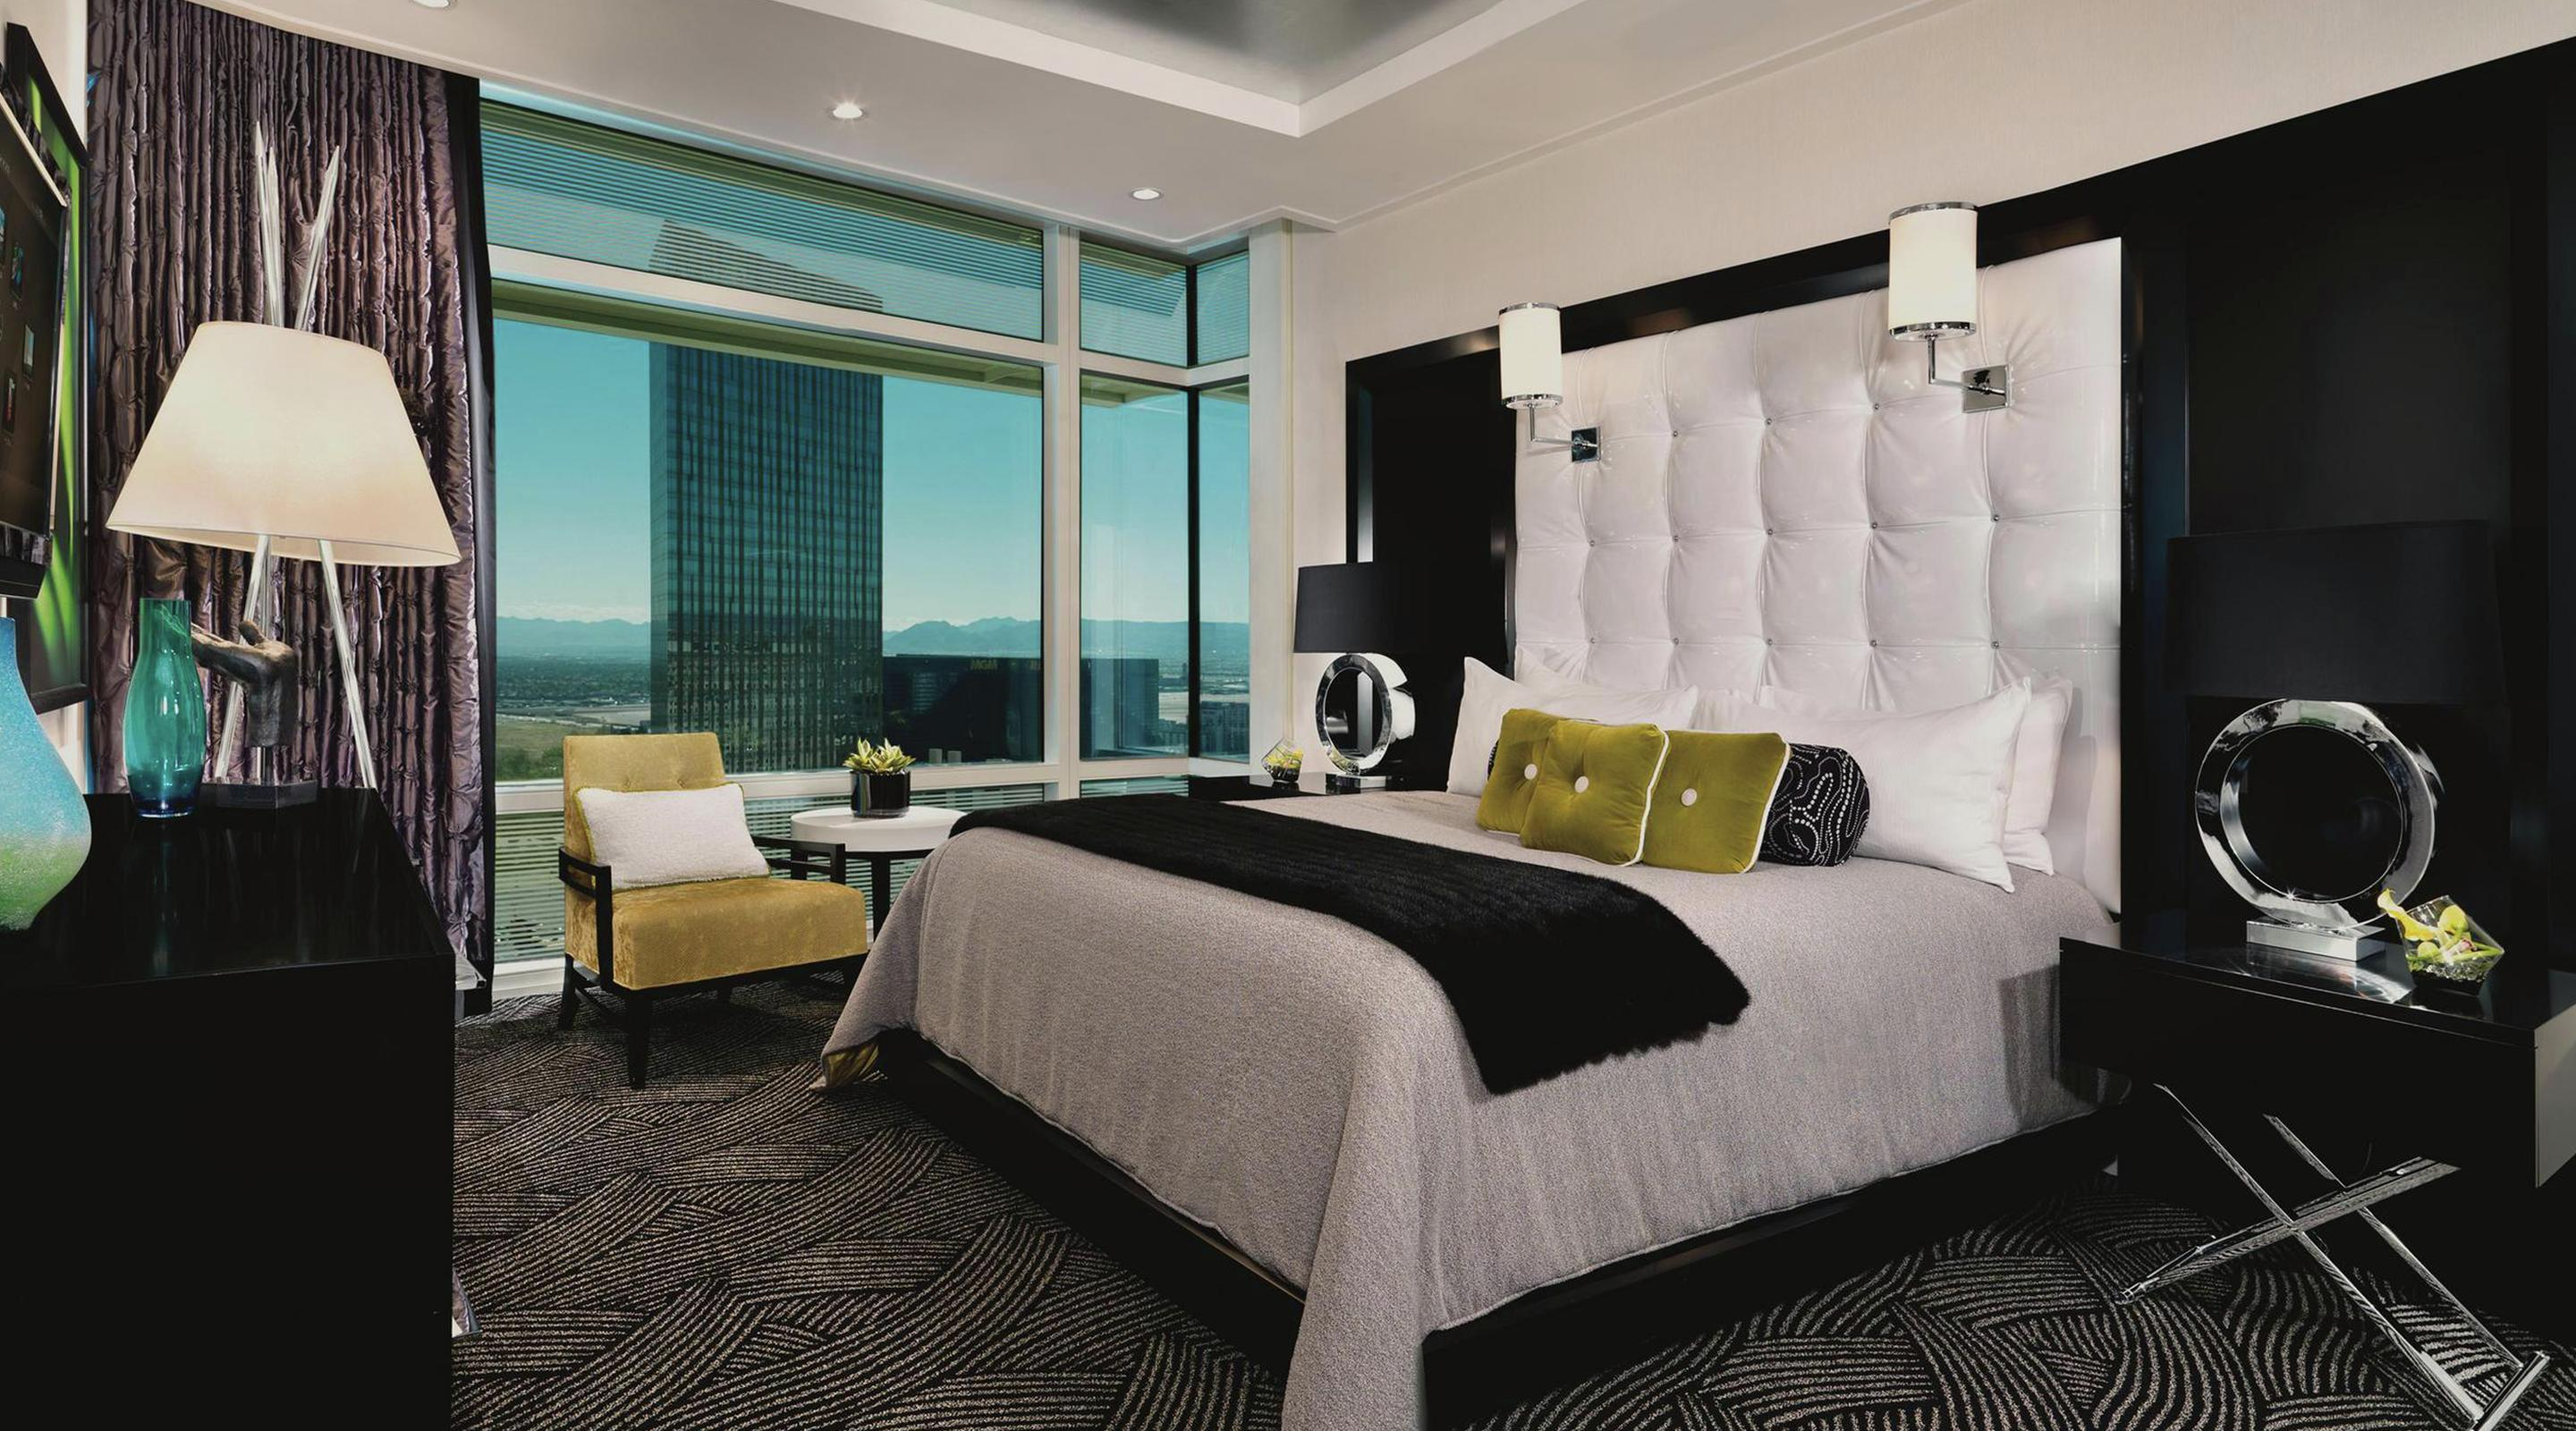 one bedroom penthouse in las vegas   aria resort   casino   aria. Two Bedroom Suites In Las Vegas Design Inspirations   Agemslife com